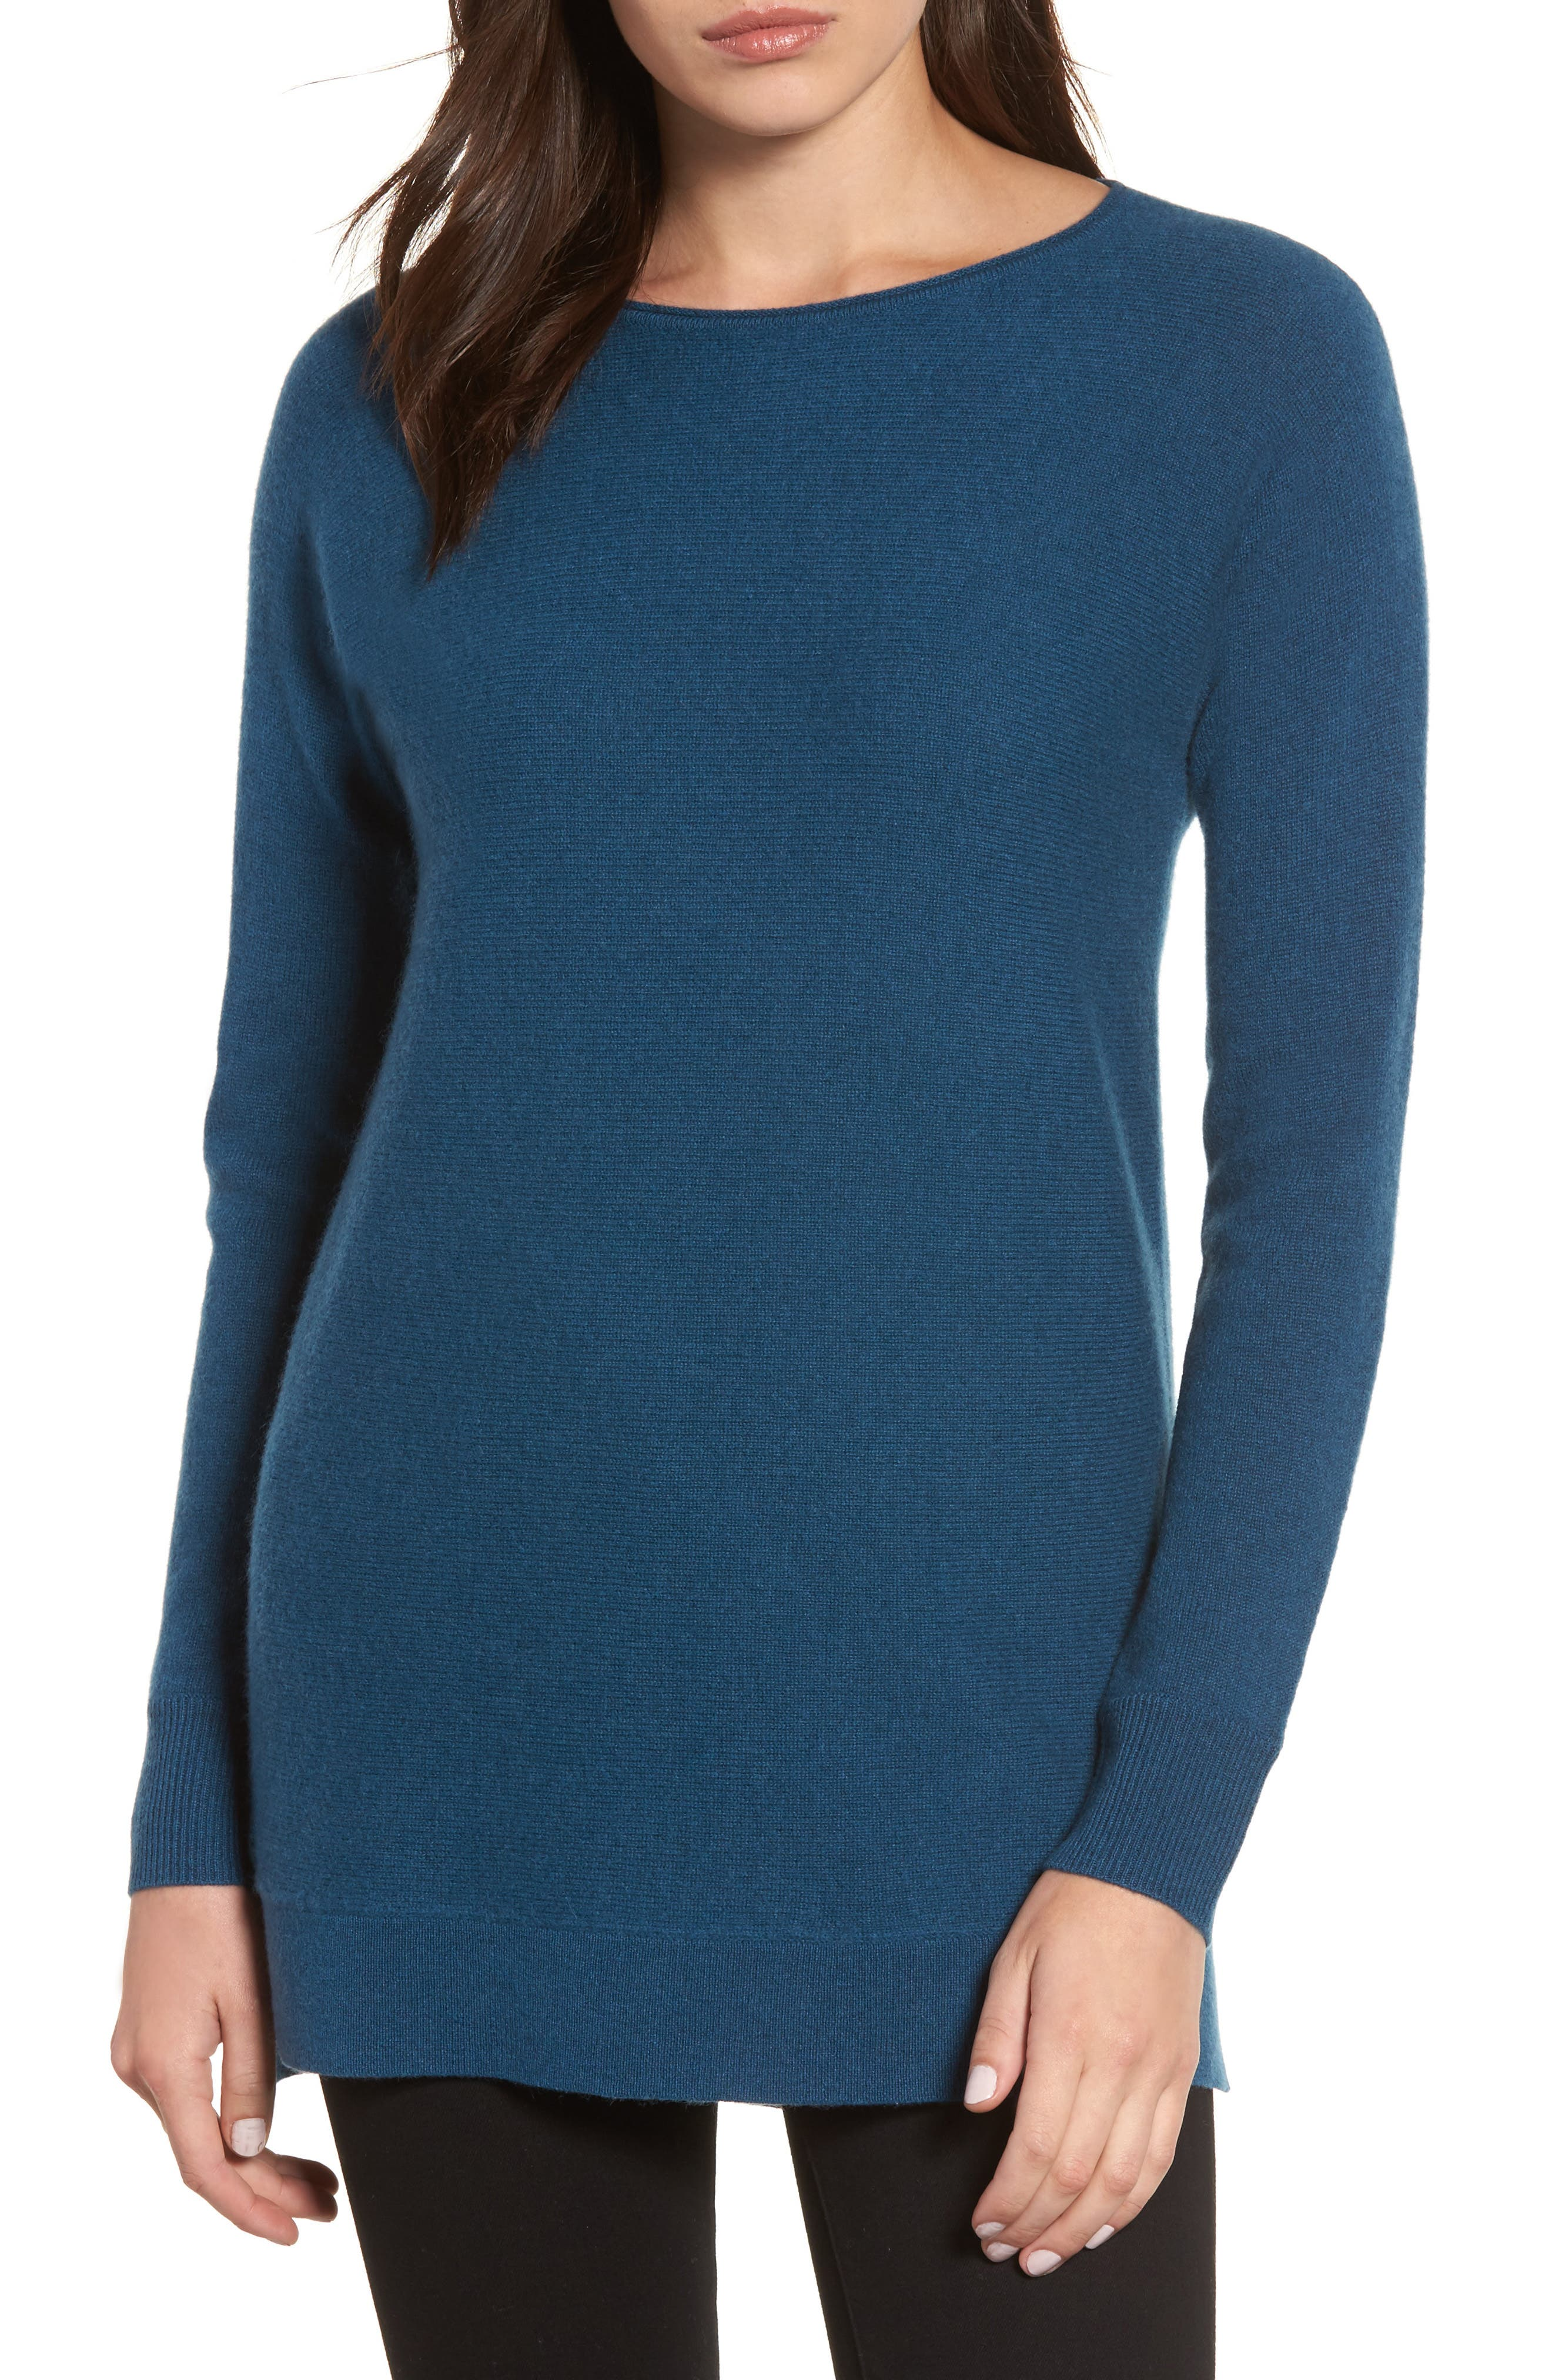 Main Image - Halogen® High/Low Wool & Cashmere Tunic Sweater (Regular & Petite)